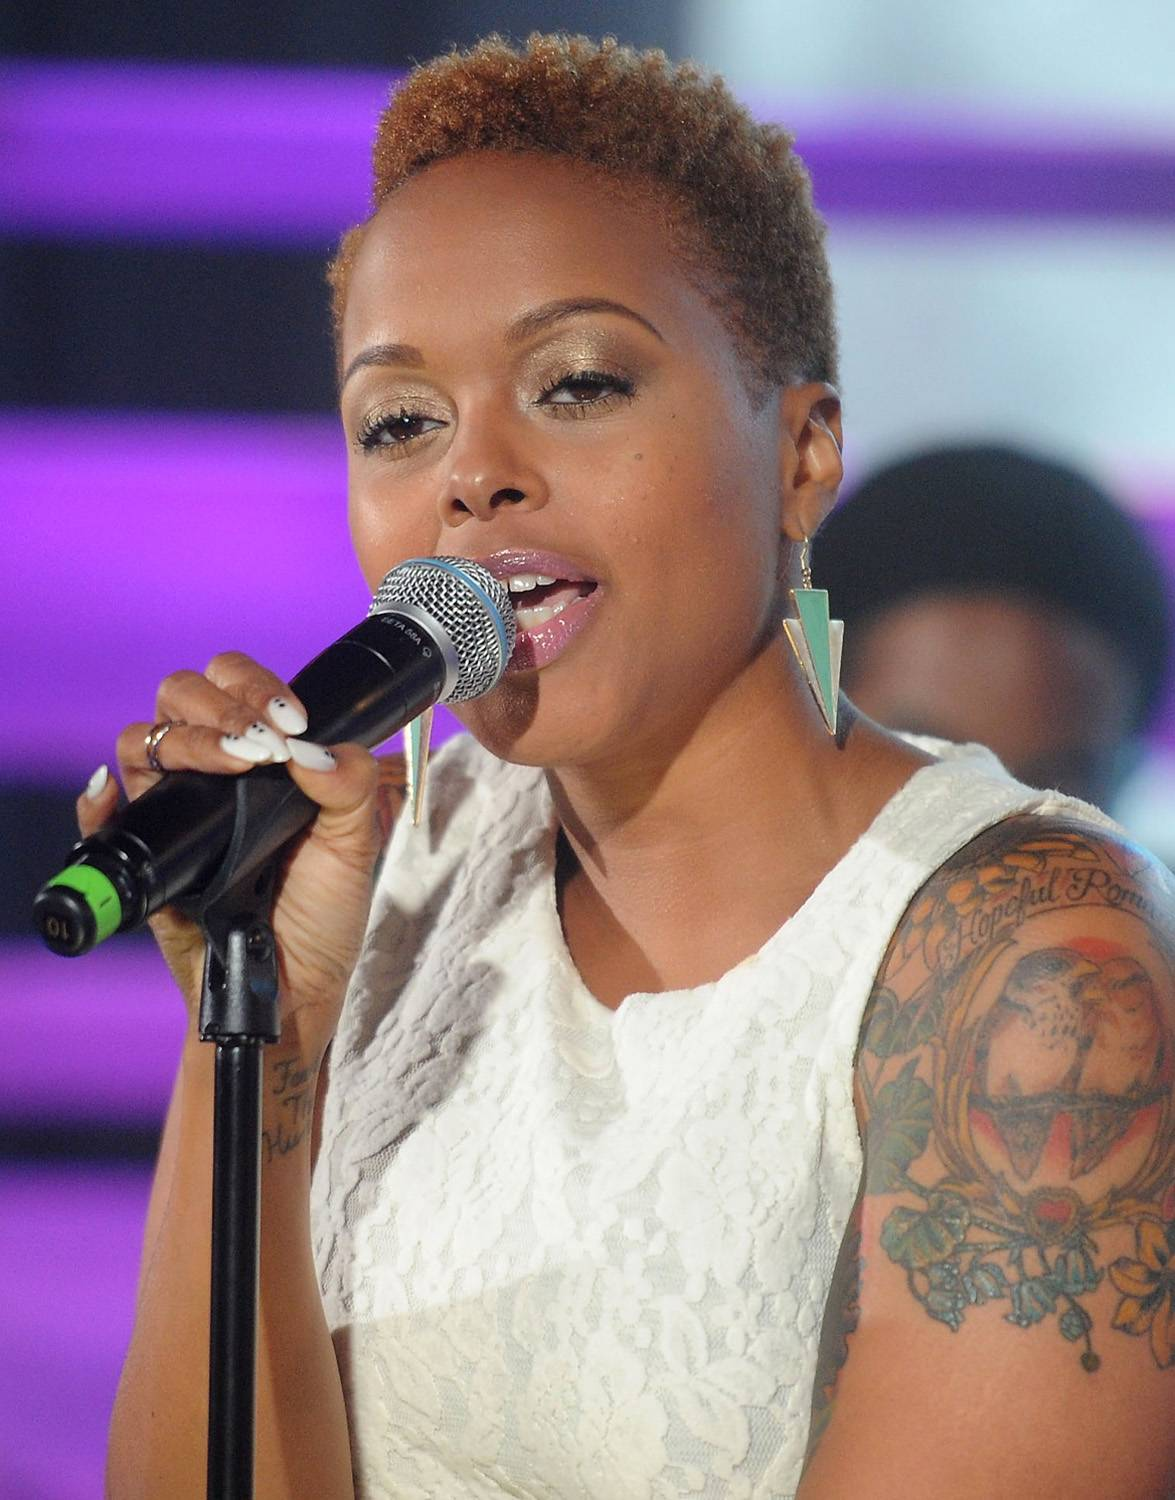 Best R&B/Soul Female Artist: Chrisette Michele - Chrisette Michele made it clear that she was Better than her soul music competition. (Photo: Jamie McCarthy/Getty Images)